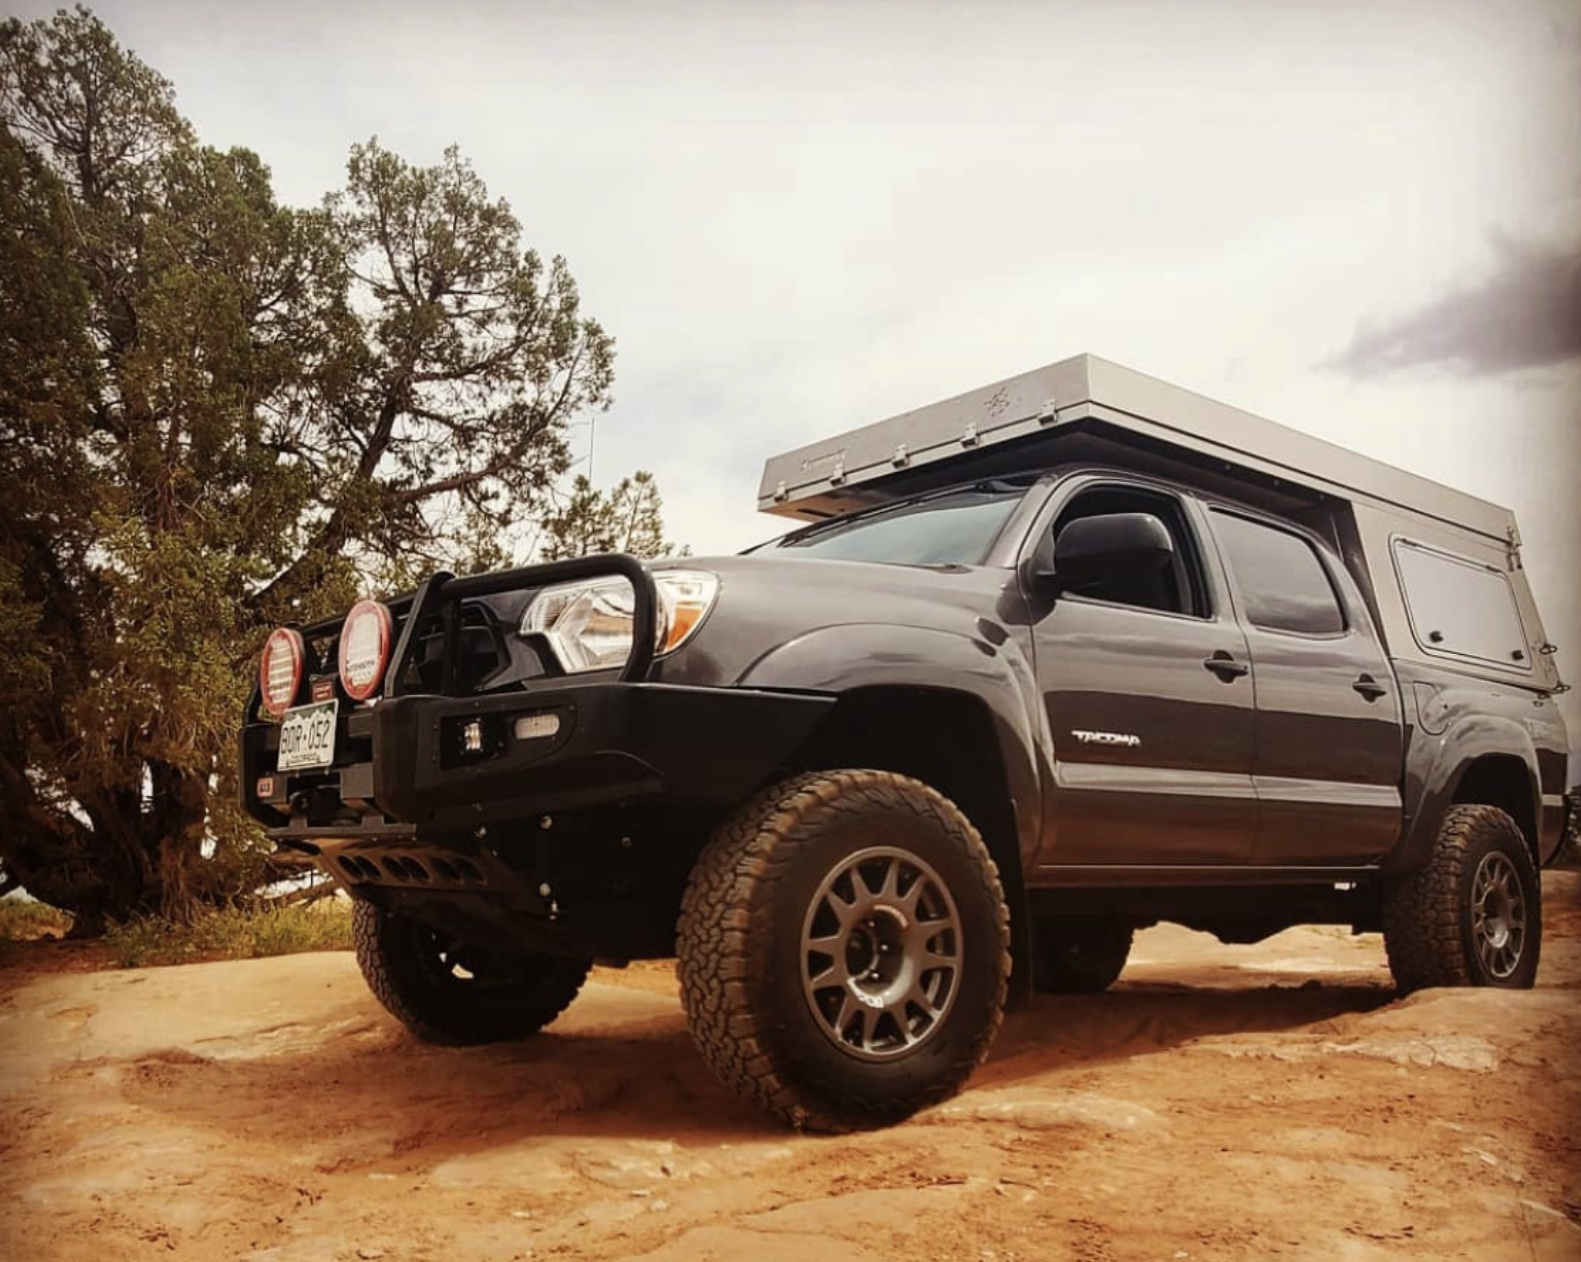 Classifieds 2013 Toyota Tacoma TRD Off-Road - Expedition Portal